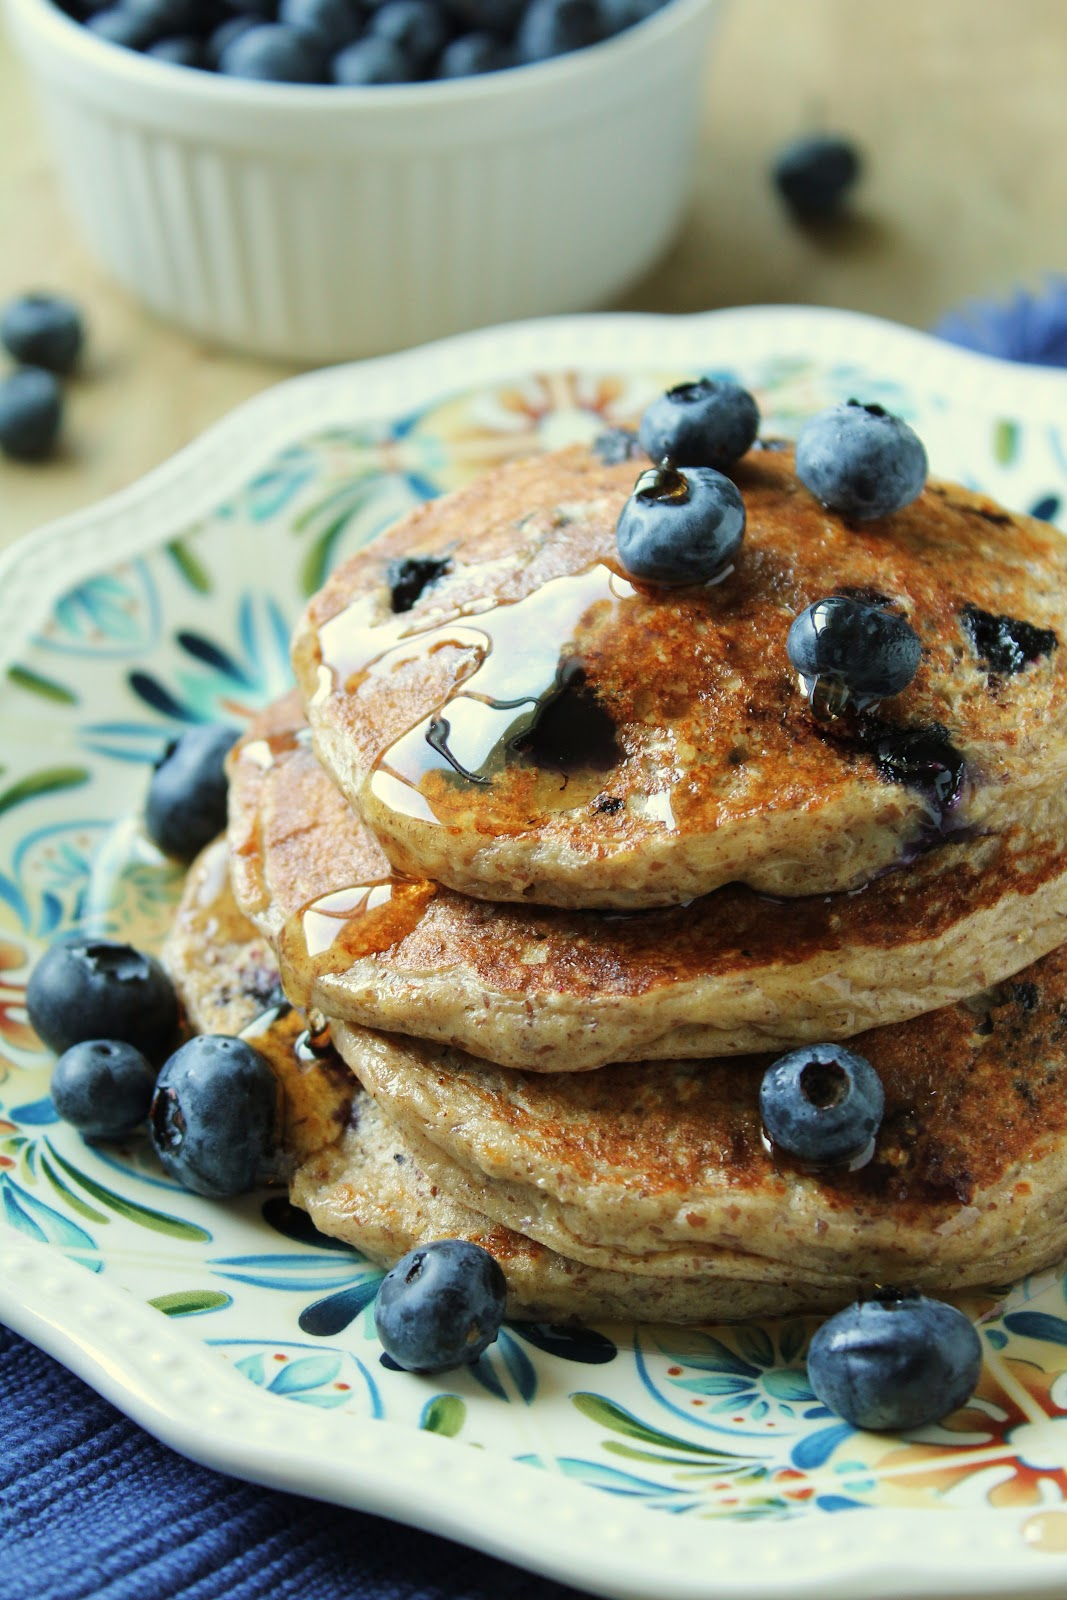 Charming Oatmeal Cottage Cheese Pancakes With Blueberries {Wheat Free, Gluten Free,  Low